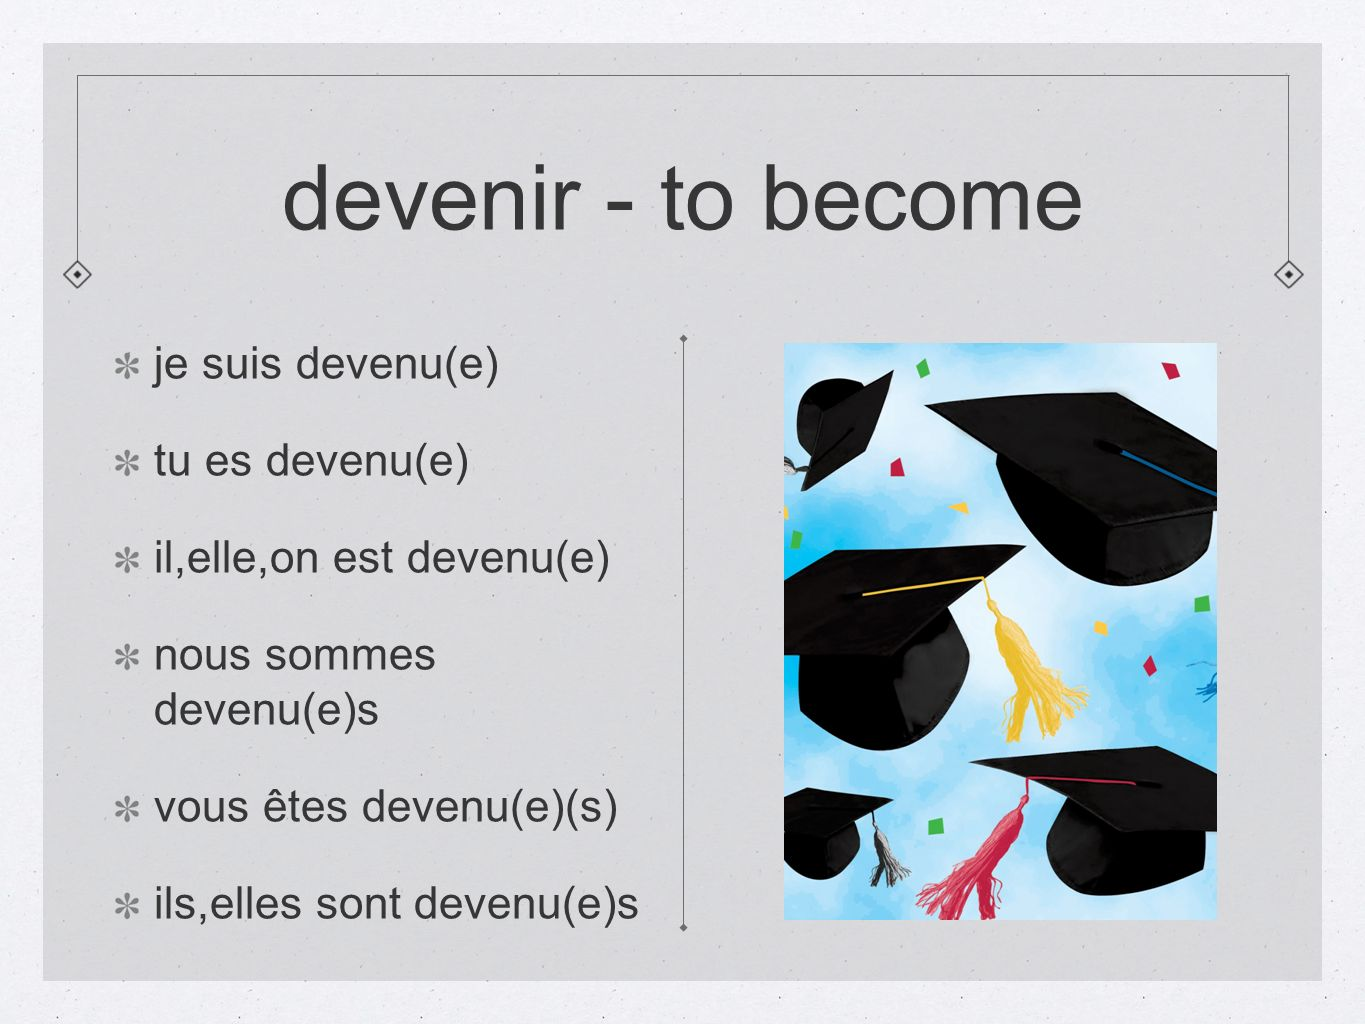 devenir - to become je suis devenu(e) tu es devenu(e)